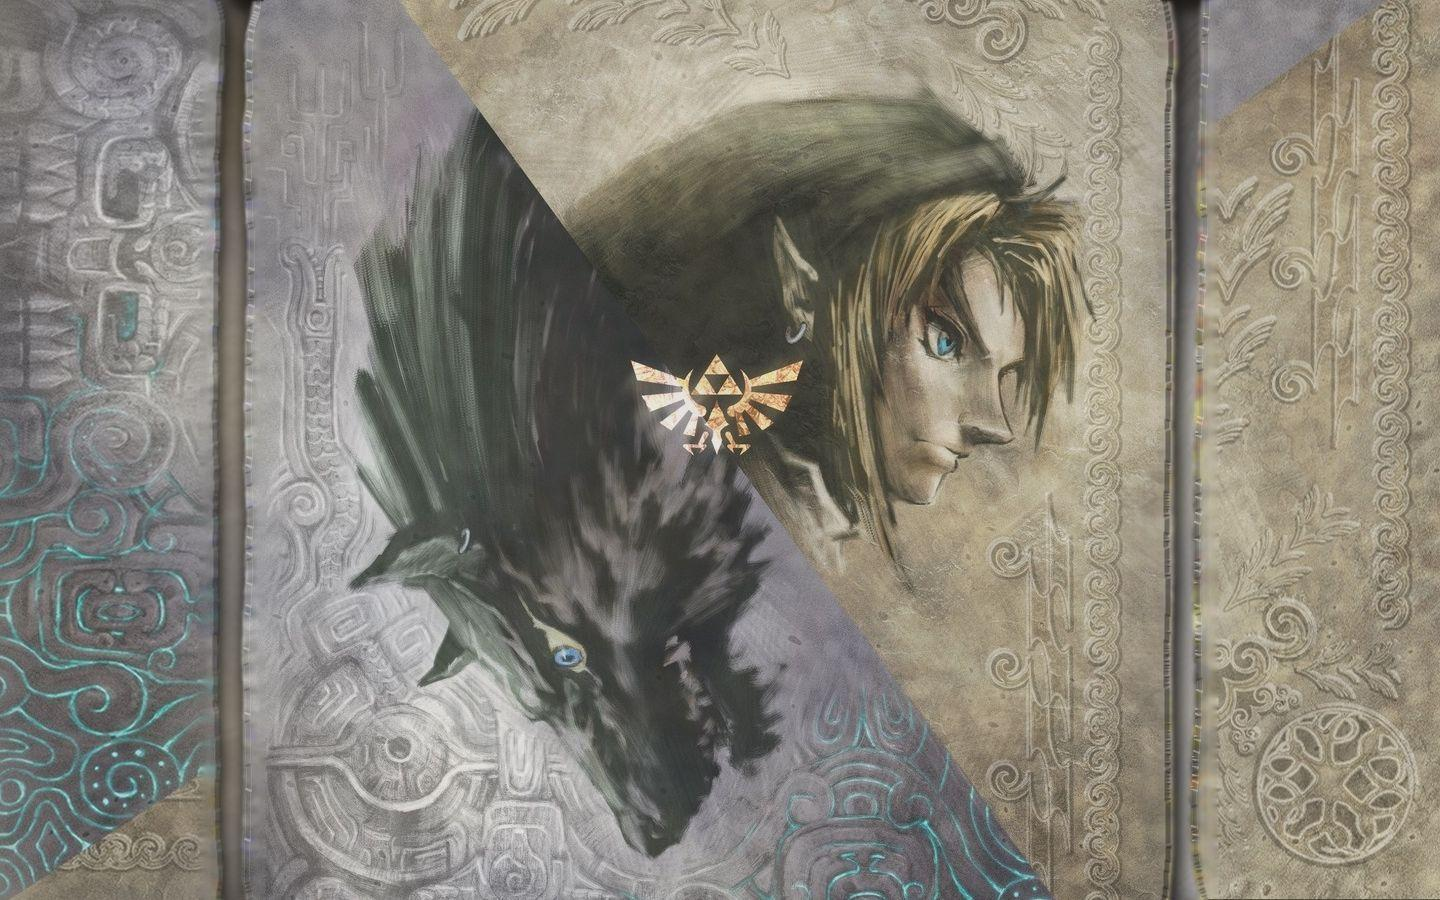 Twilight princess pic 12